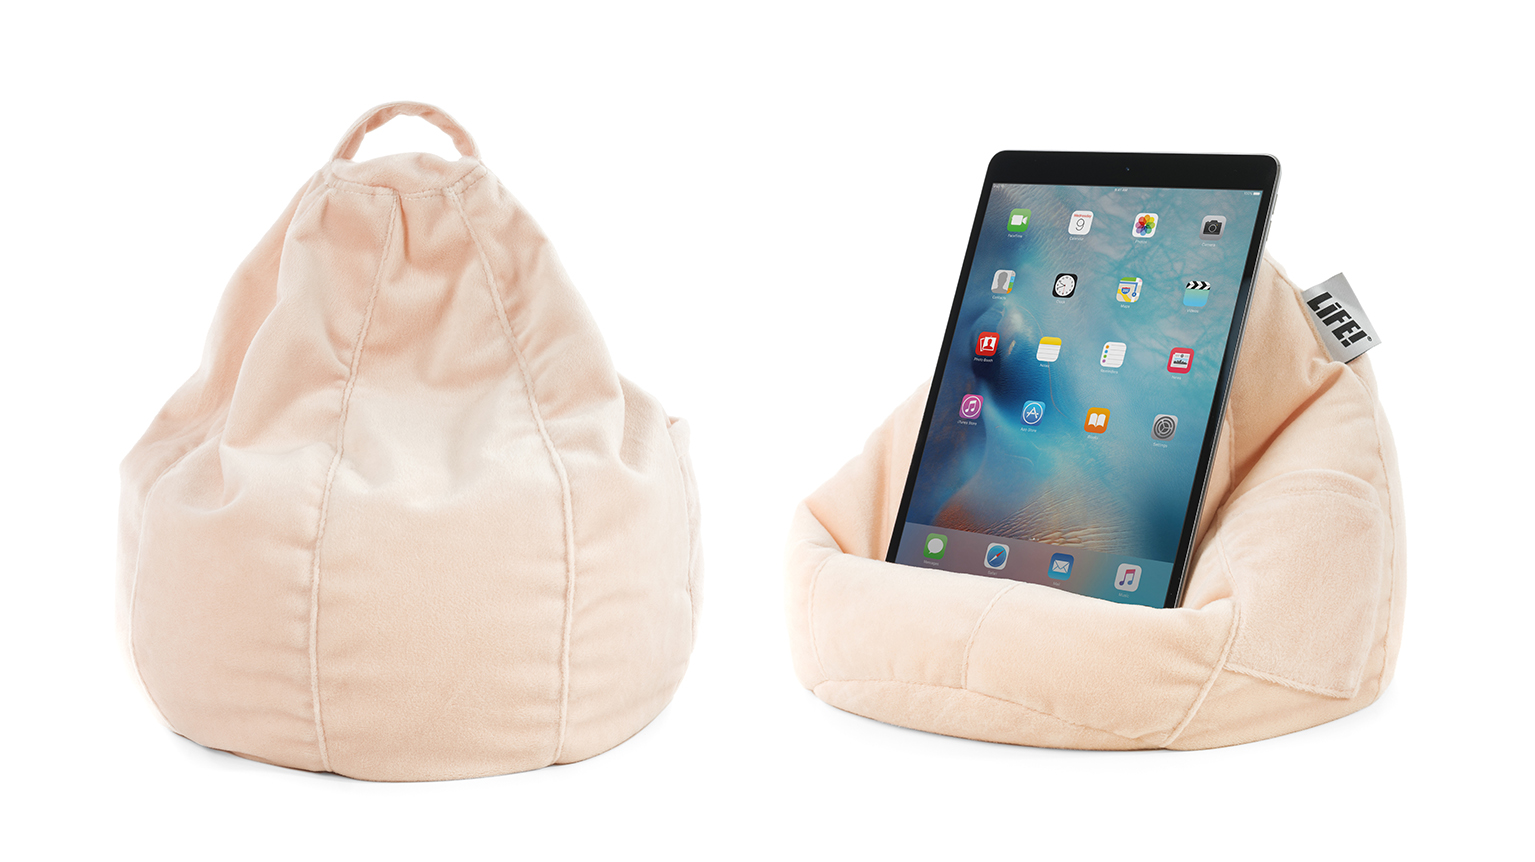 The iCrib is a soft blush peach pink color made from velvet. A tablet, mobile device or iPad rests securely on it. It has a handle and storage pocket.